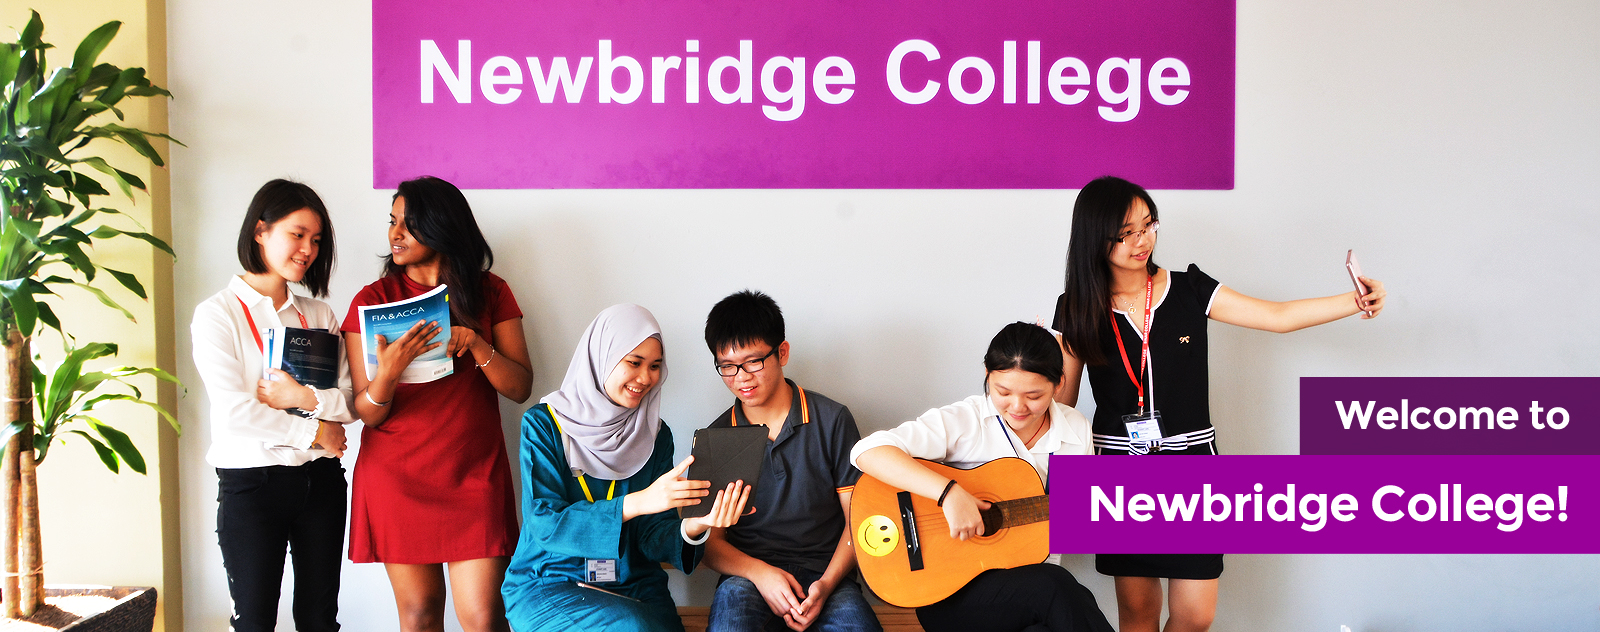 Welcome Newbridge College